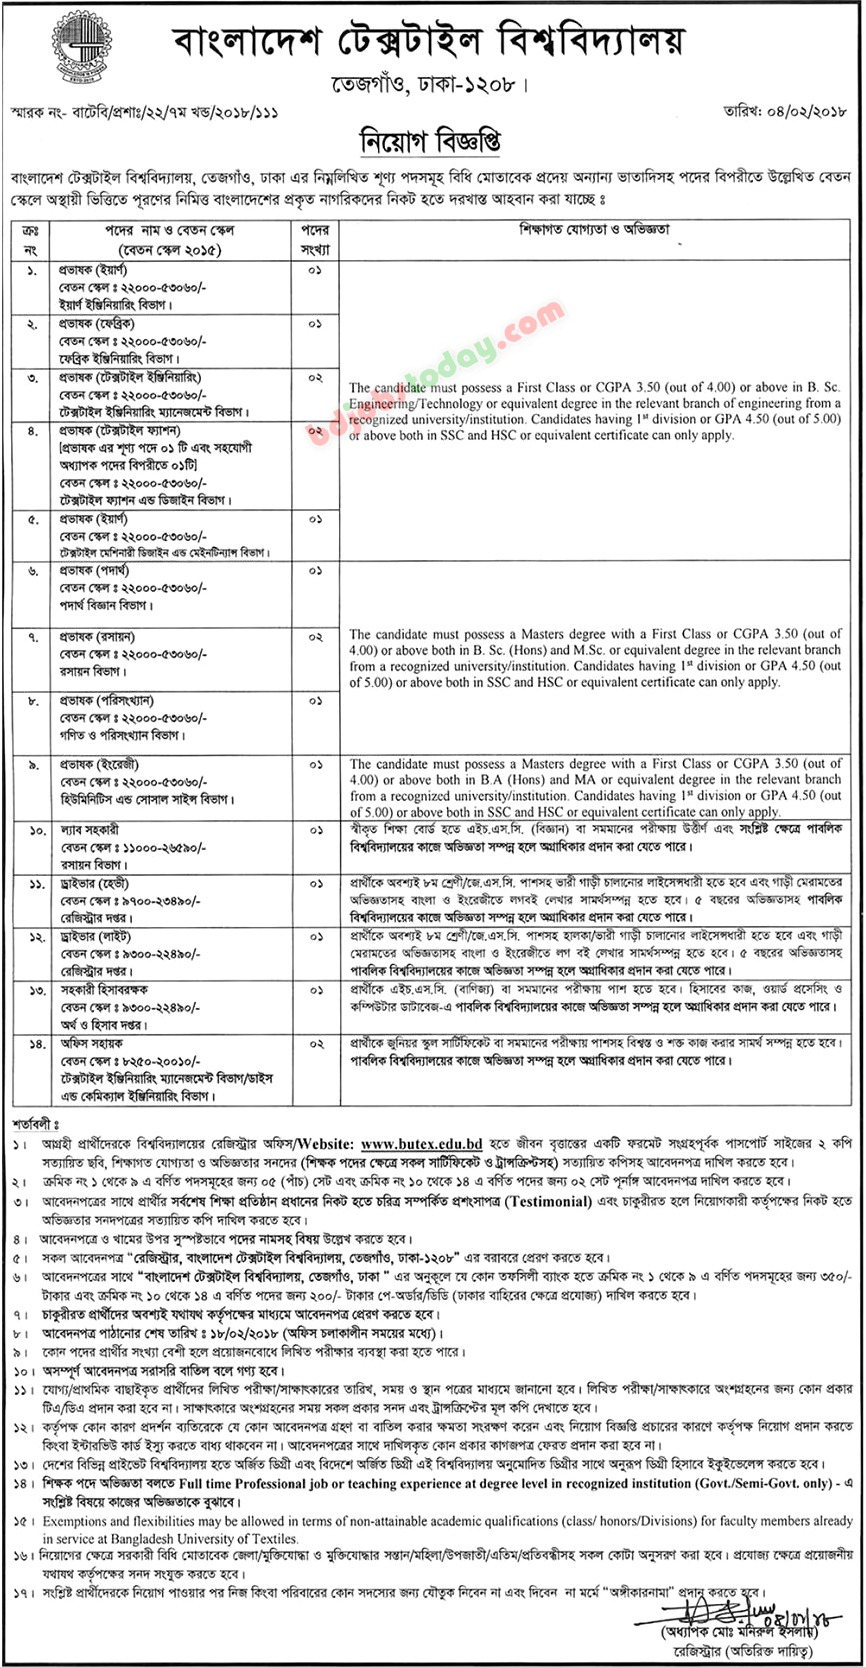 Bangladesh University of Textiles jobs